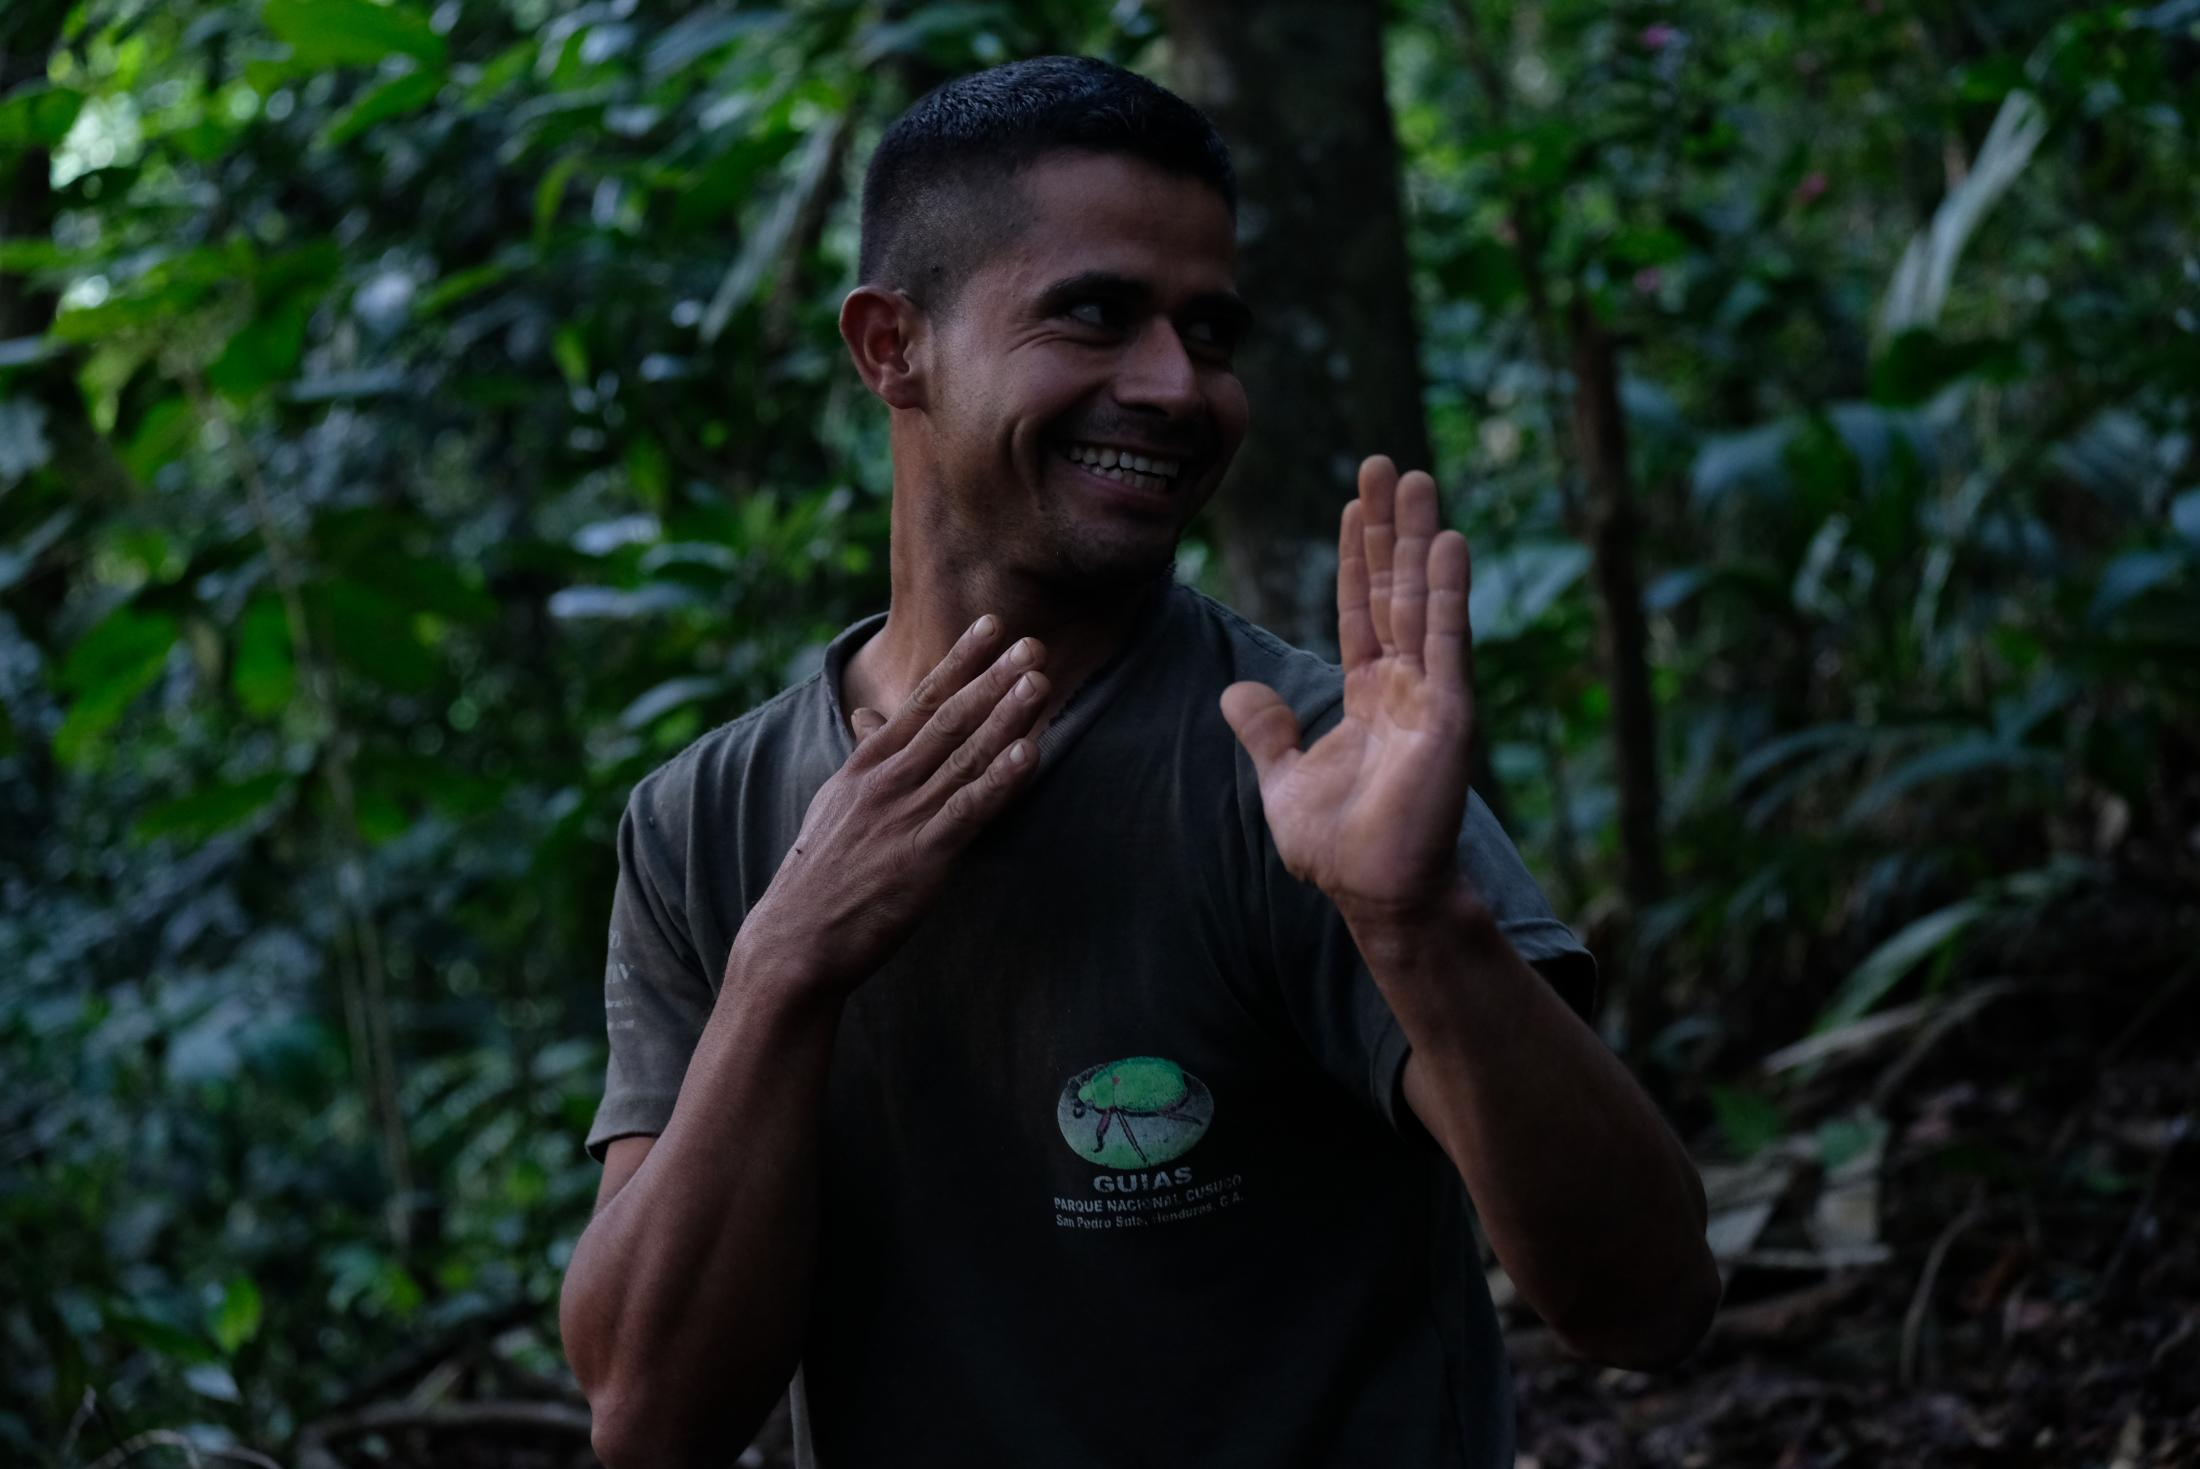 My experience in Cusuco wouldn´t have been the same without strong conservation guide Marvin. It is hard to describe the passion and intelligence od Marvin. If not working as a guide in Cusuco, he worked at the coffee farms in his home Buenos Aires, neighbouring CUsuco National Park. He is studying English and hopes to one day be able to go to the US to work. He told me violence and corruption are hurting his country and so many people like him hope to find safety away from their home.